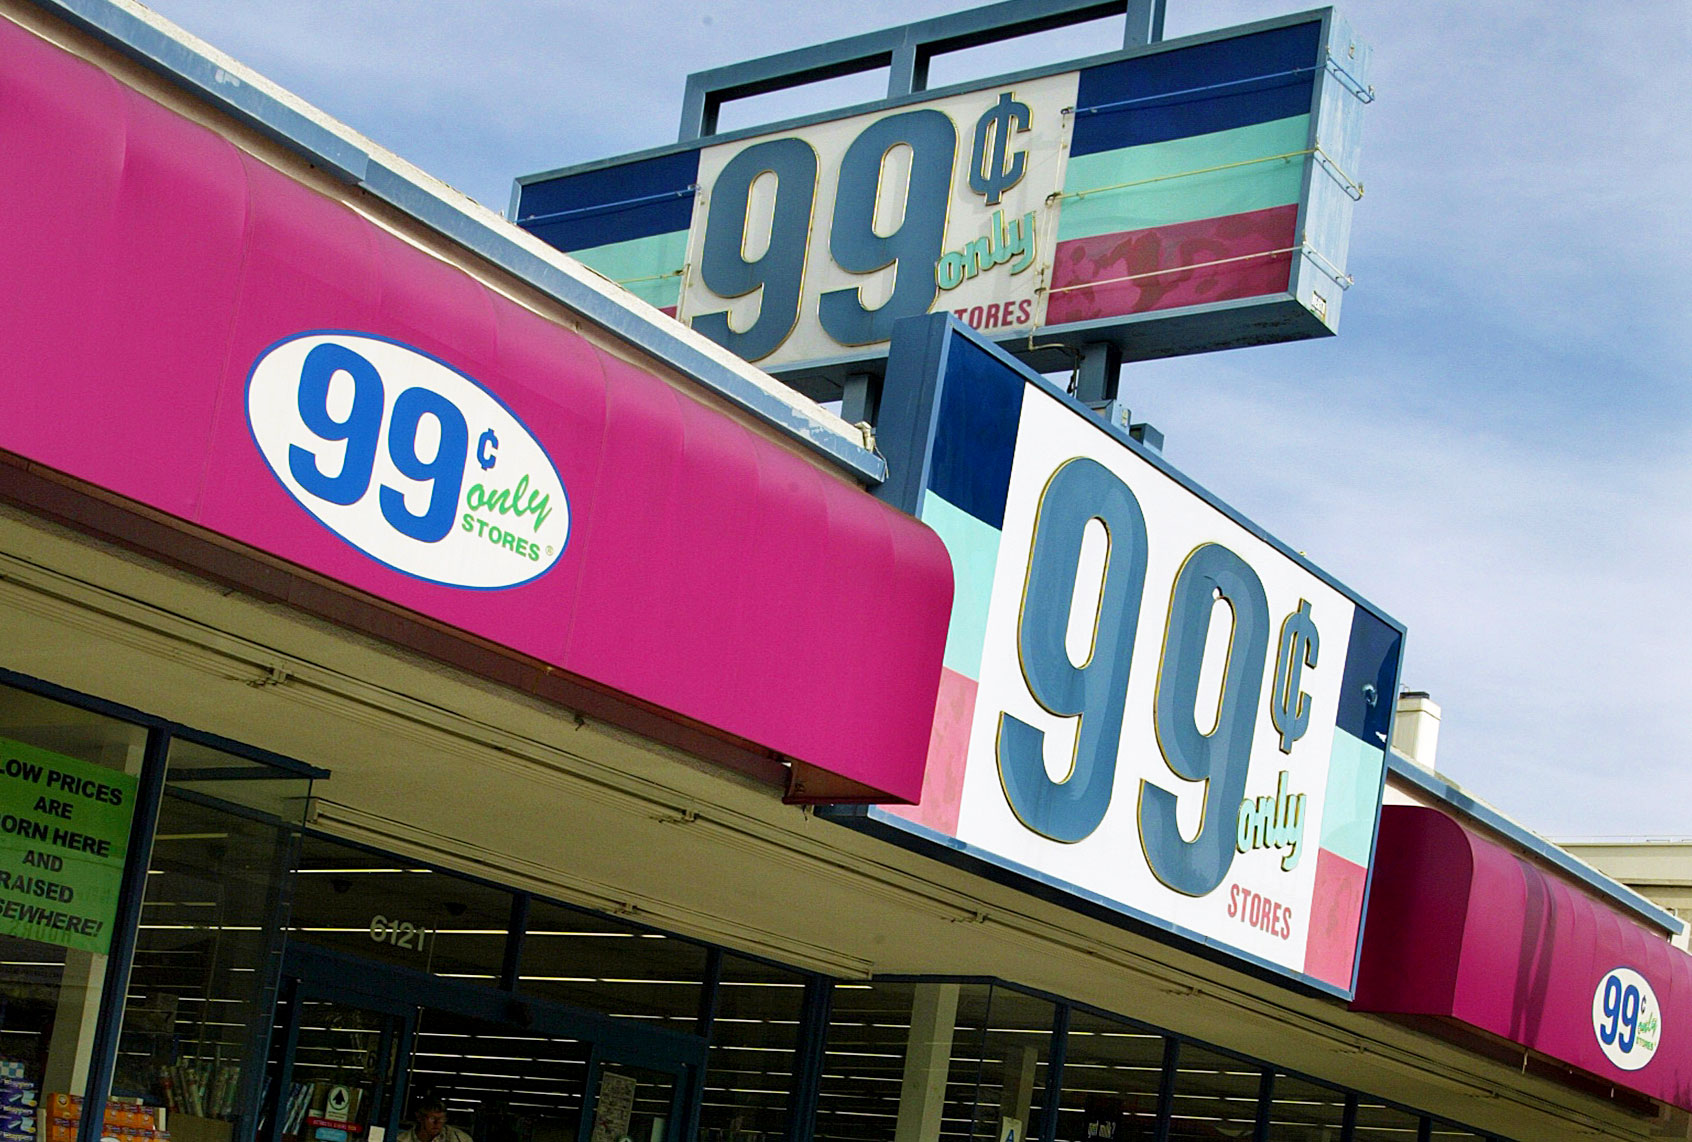 Report: These stores offer bargain prices — and toxic products